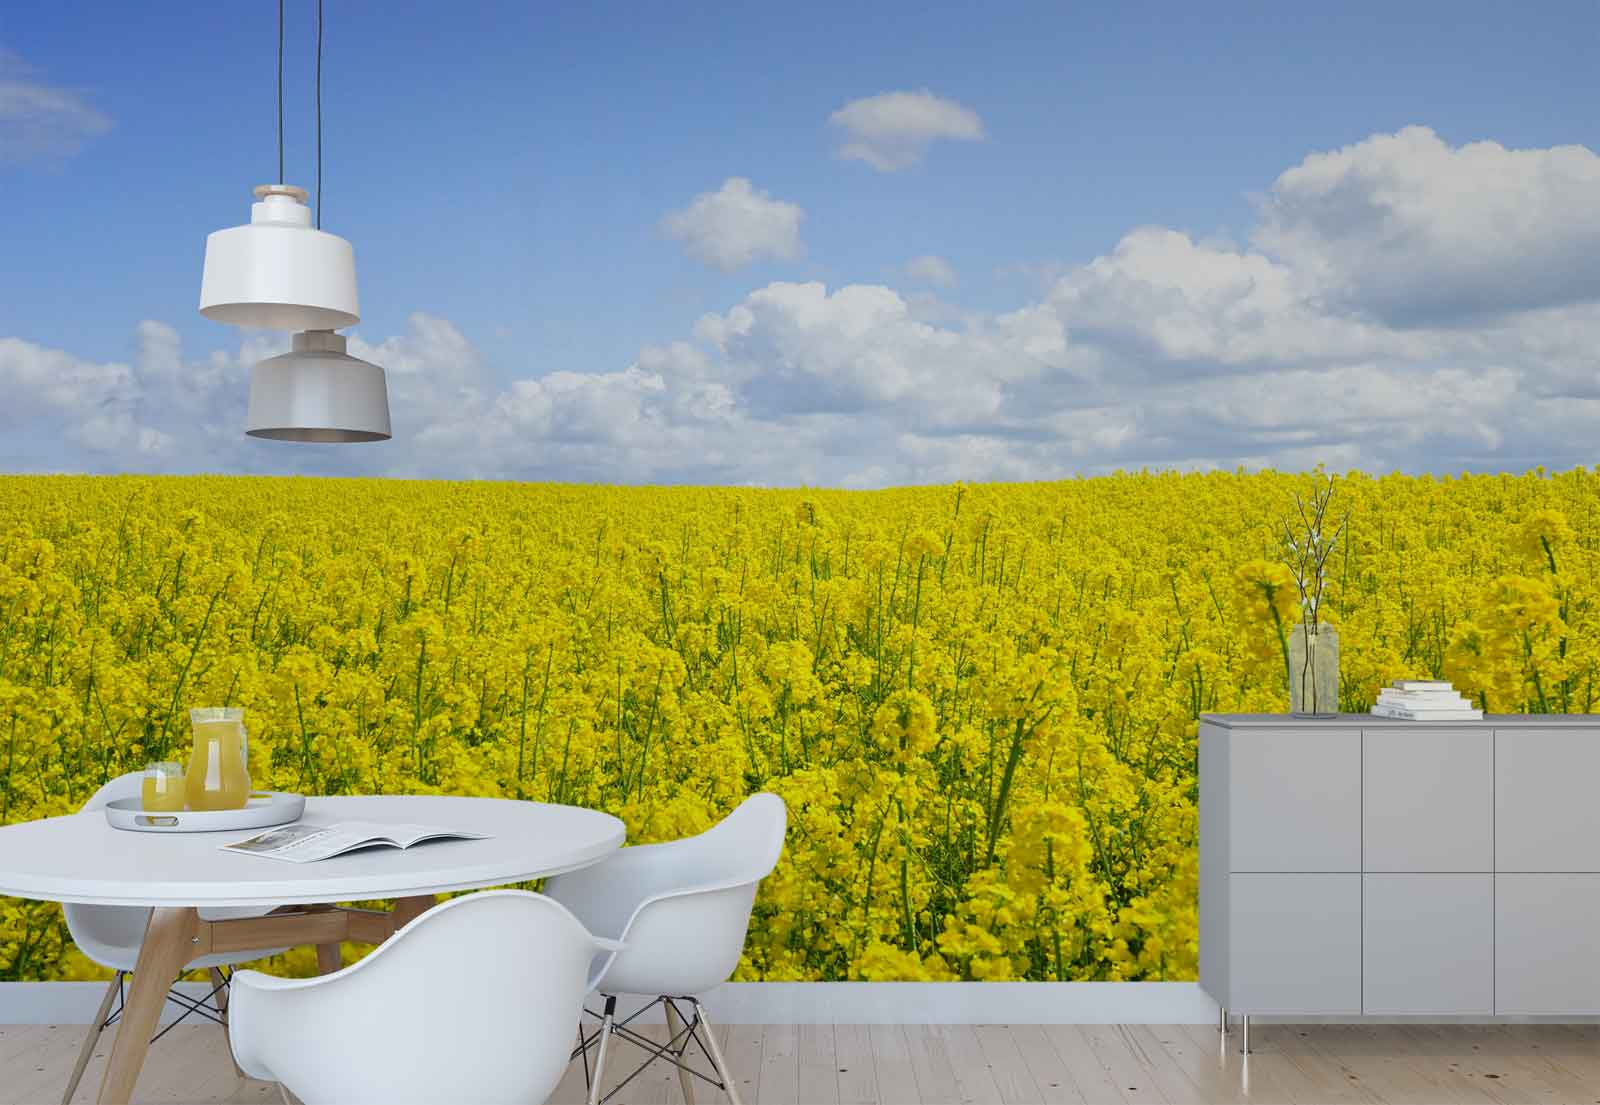 Field Rapeseeds Flowers  Photo Wallpaper Wall Mural (FW-1077)